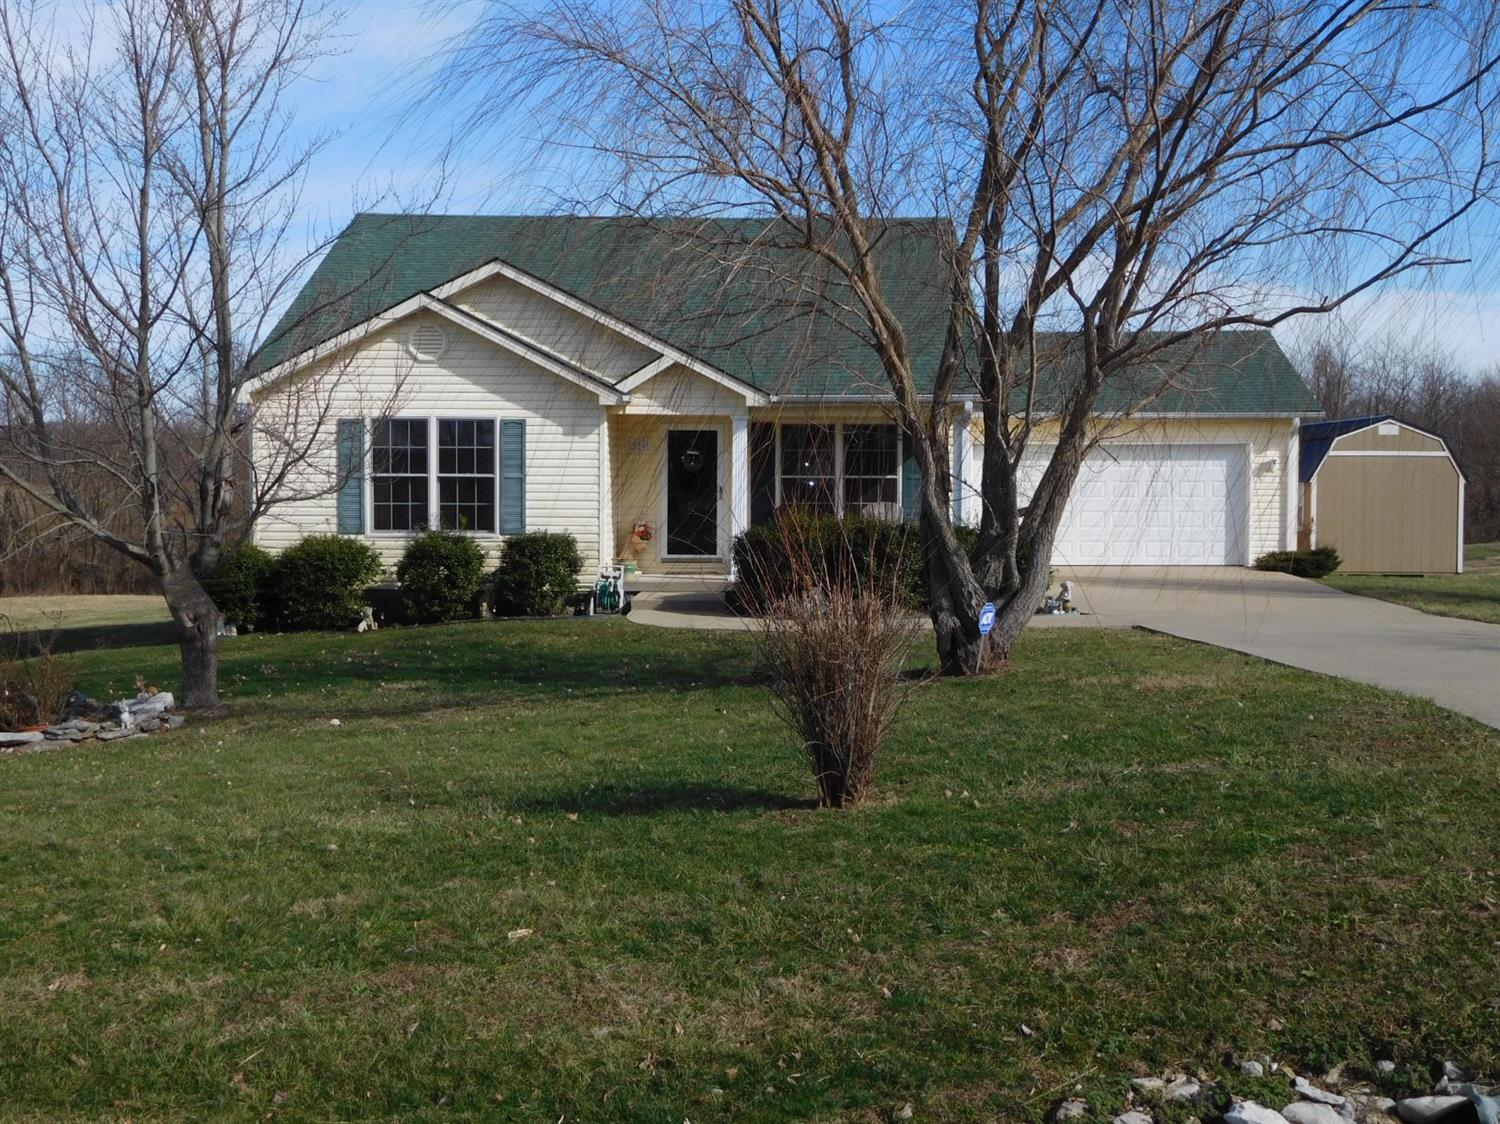 Home For Sale at 70 Andrew Ct, Lancaster, KY 40444